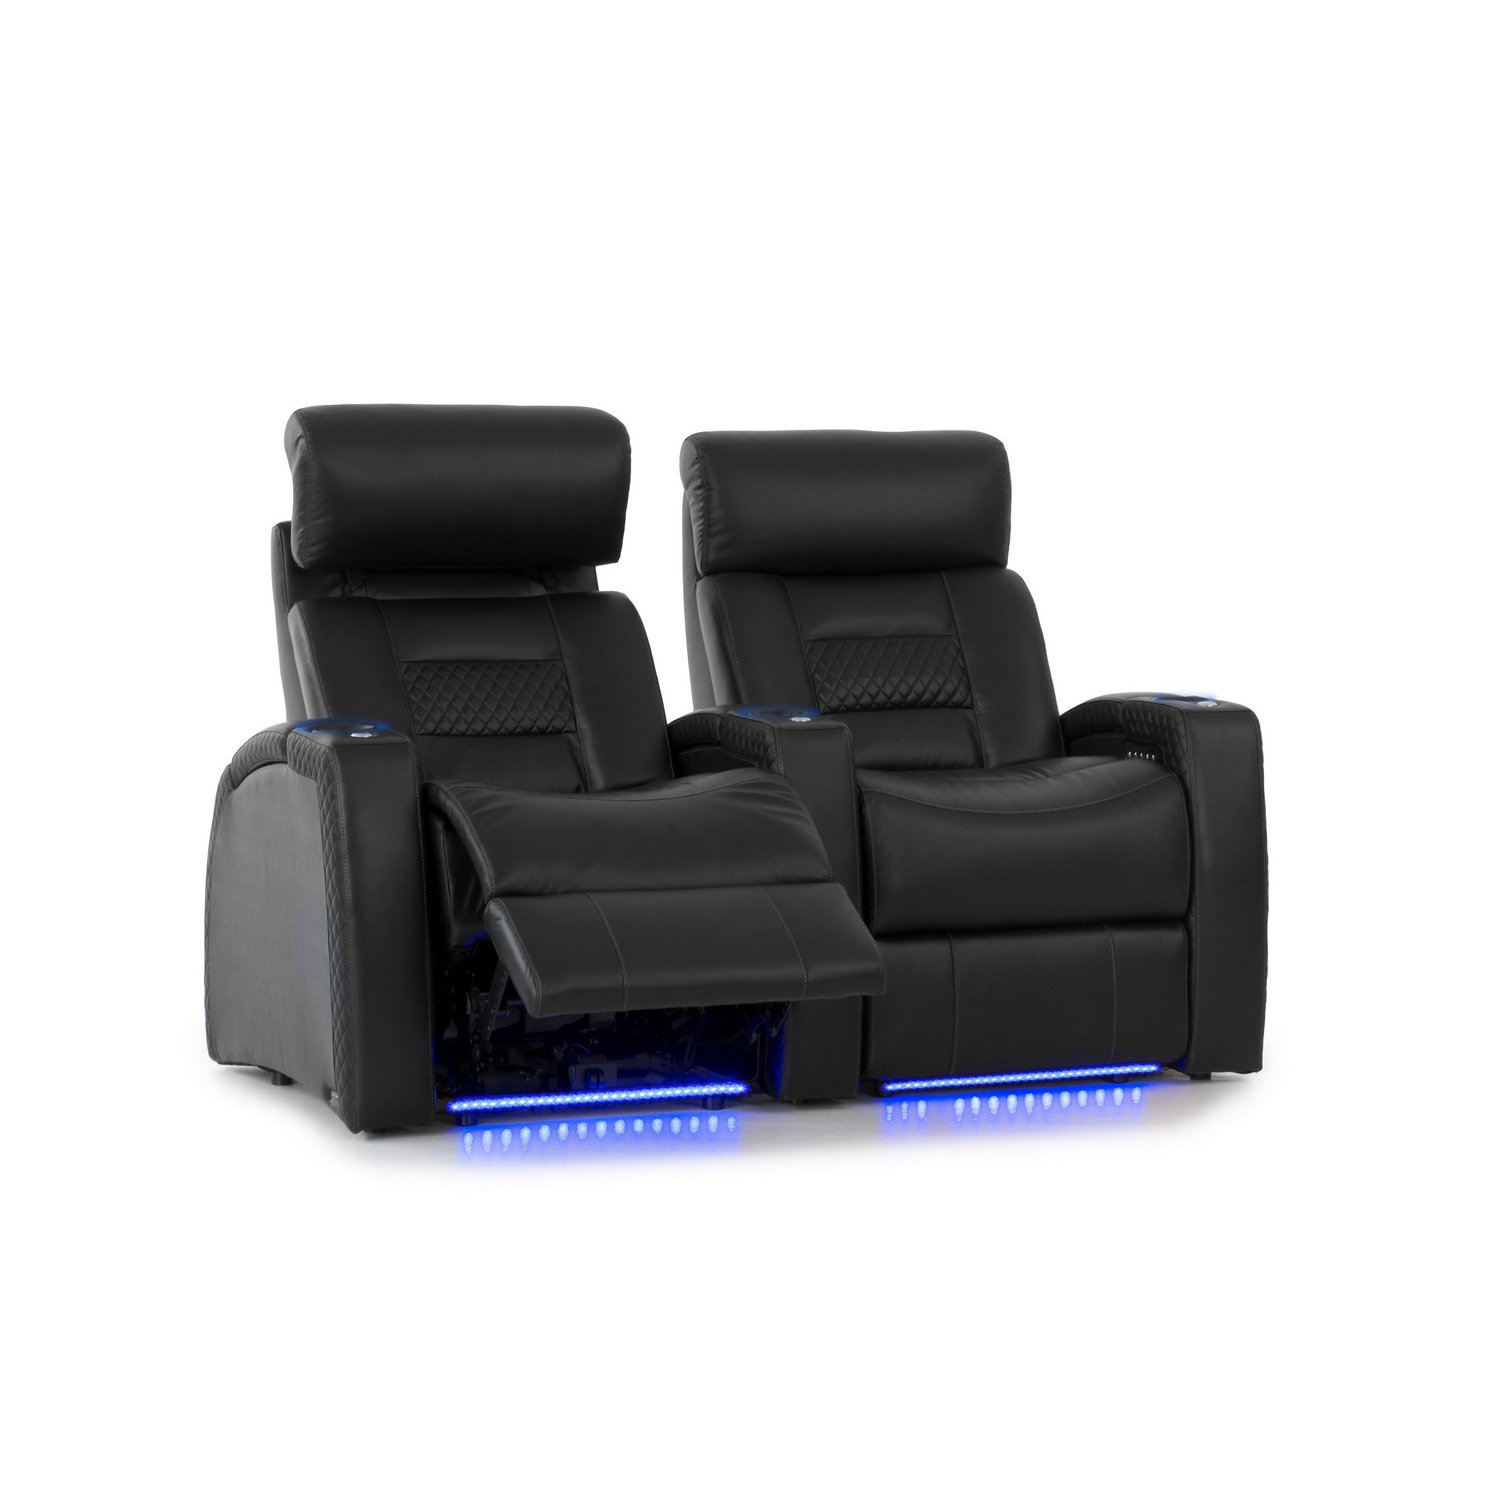 Octane Seating Flex HR Series Home Stadium Seating - Black Top Grain Leather - Power Recline - Motorized Headrest - Lighted Cup Holders - Straight Row 2 by Octane Seating